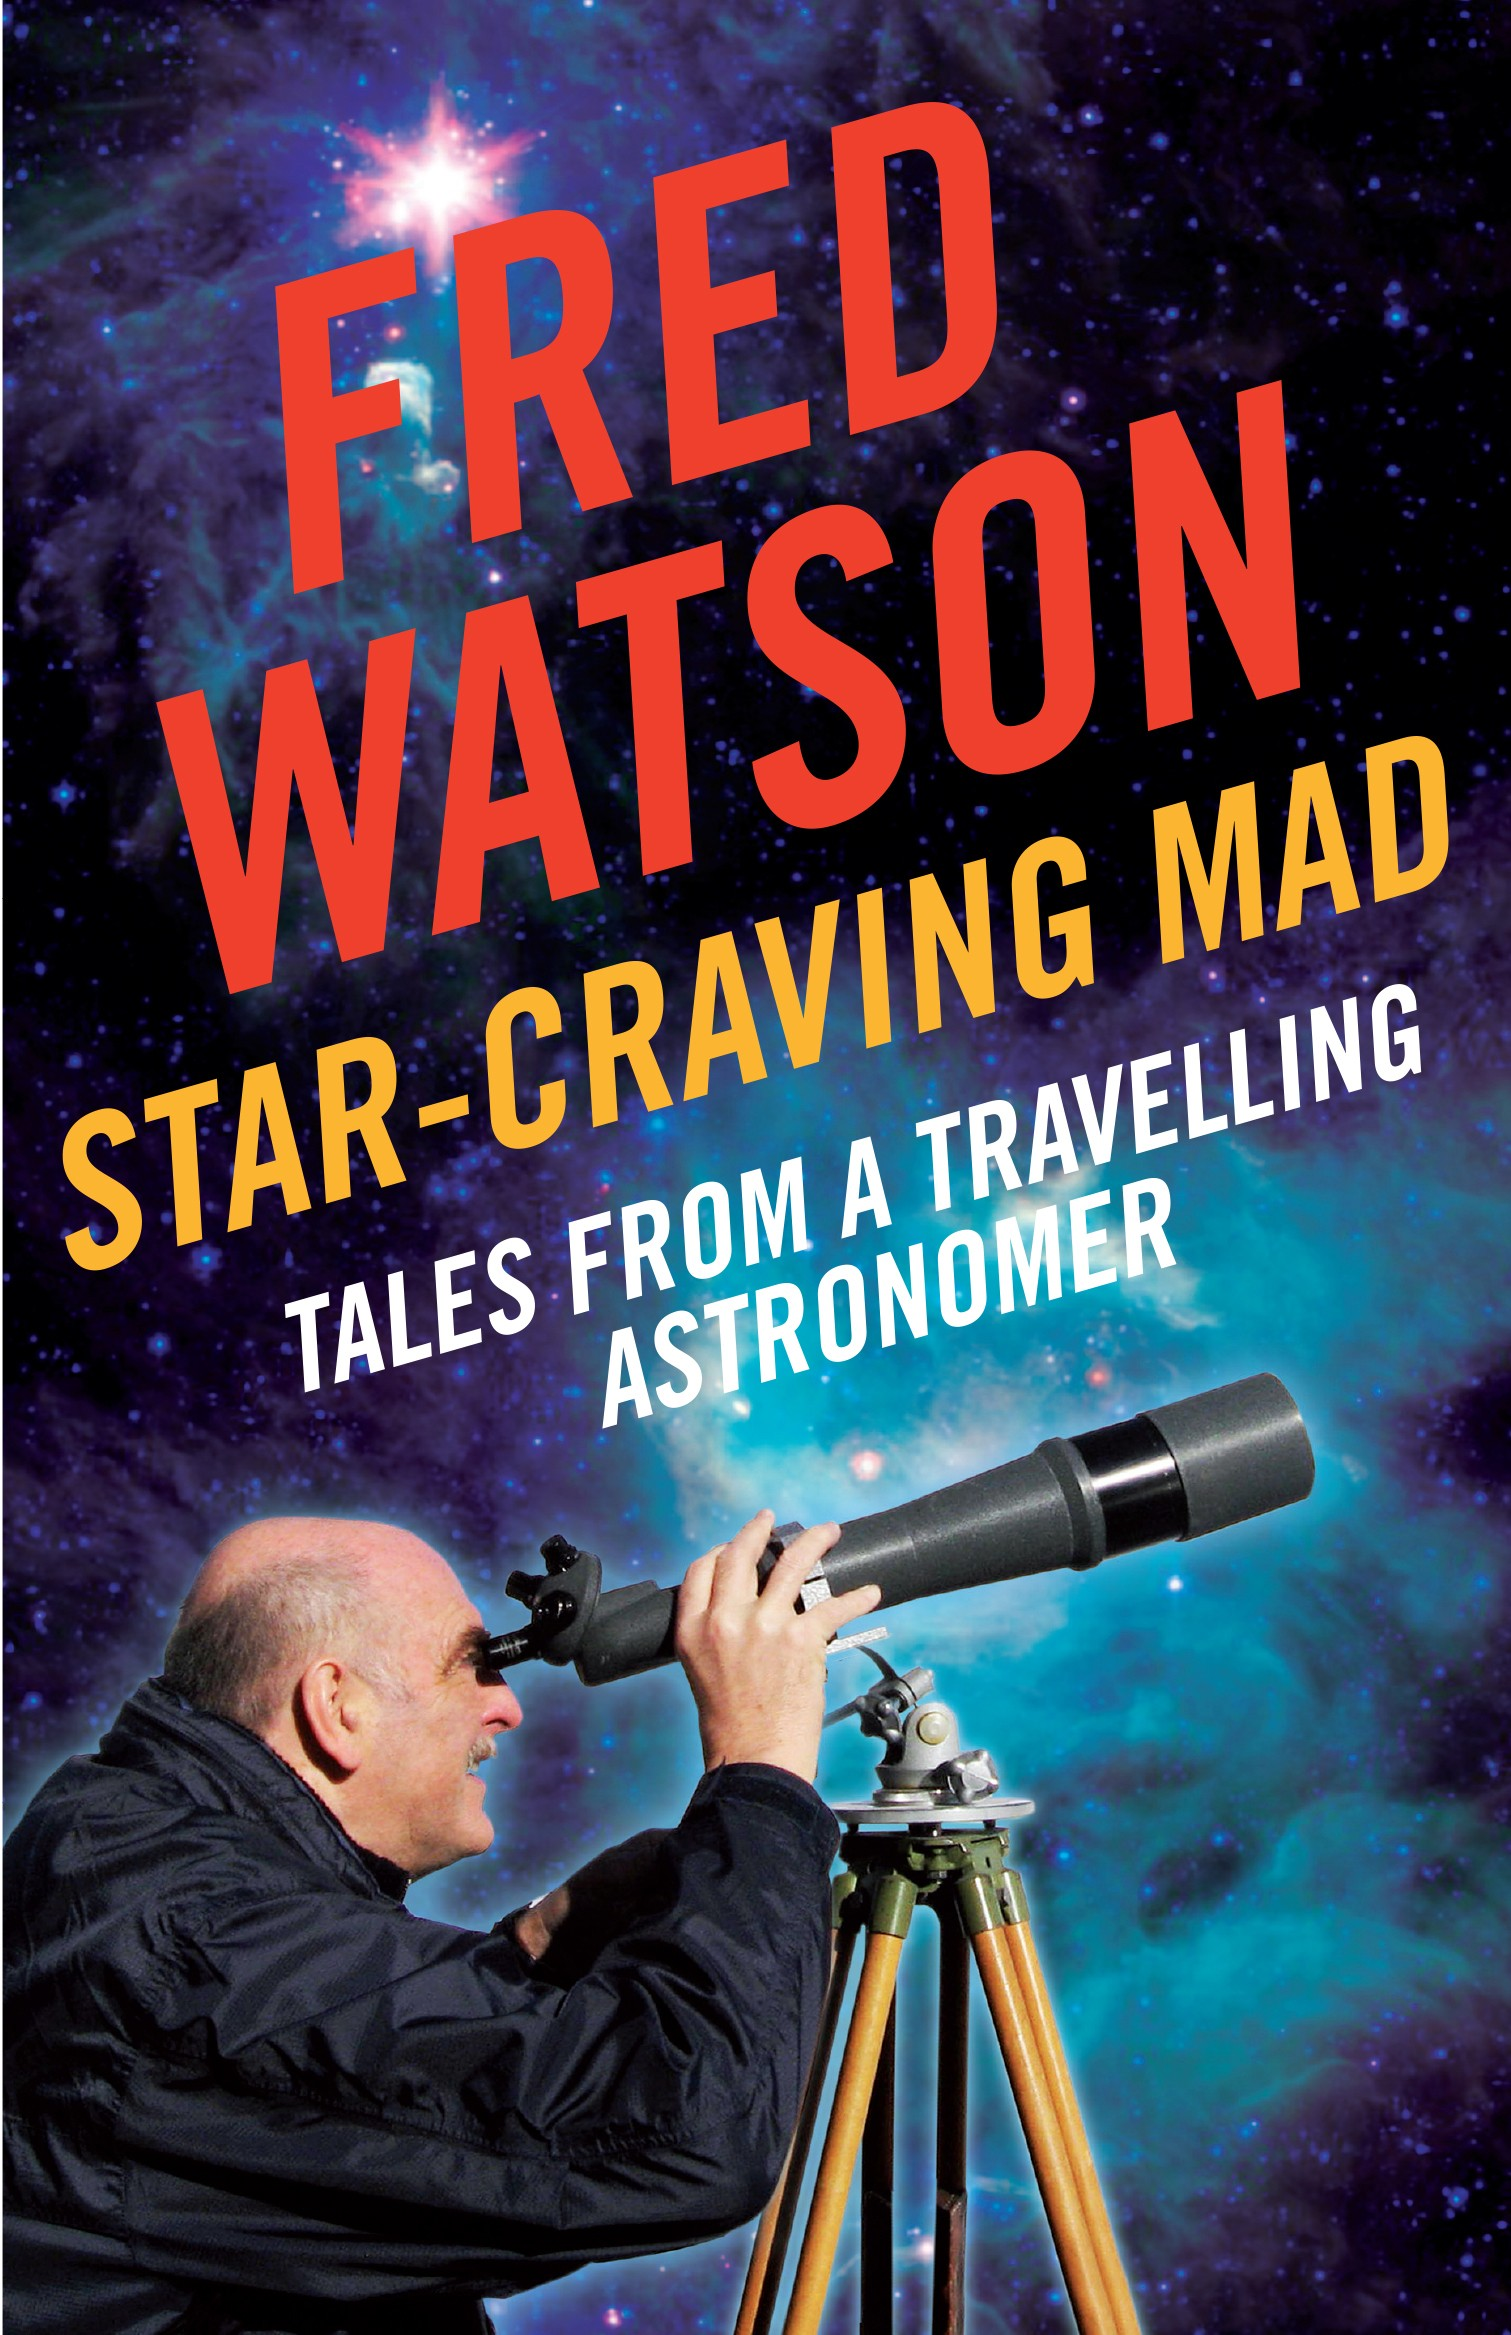 Star-Craving Mad - Tales from a travelling astronomer by Fred Watson